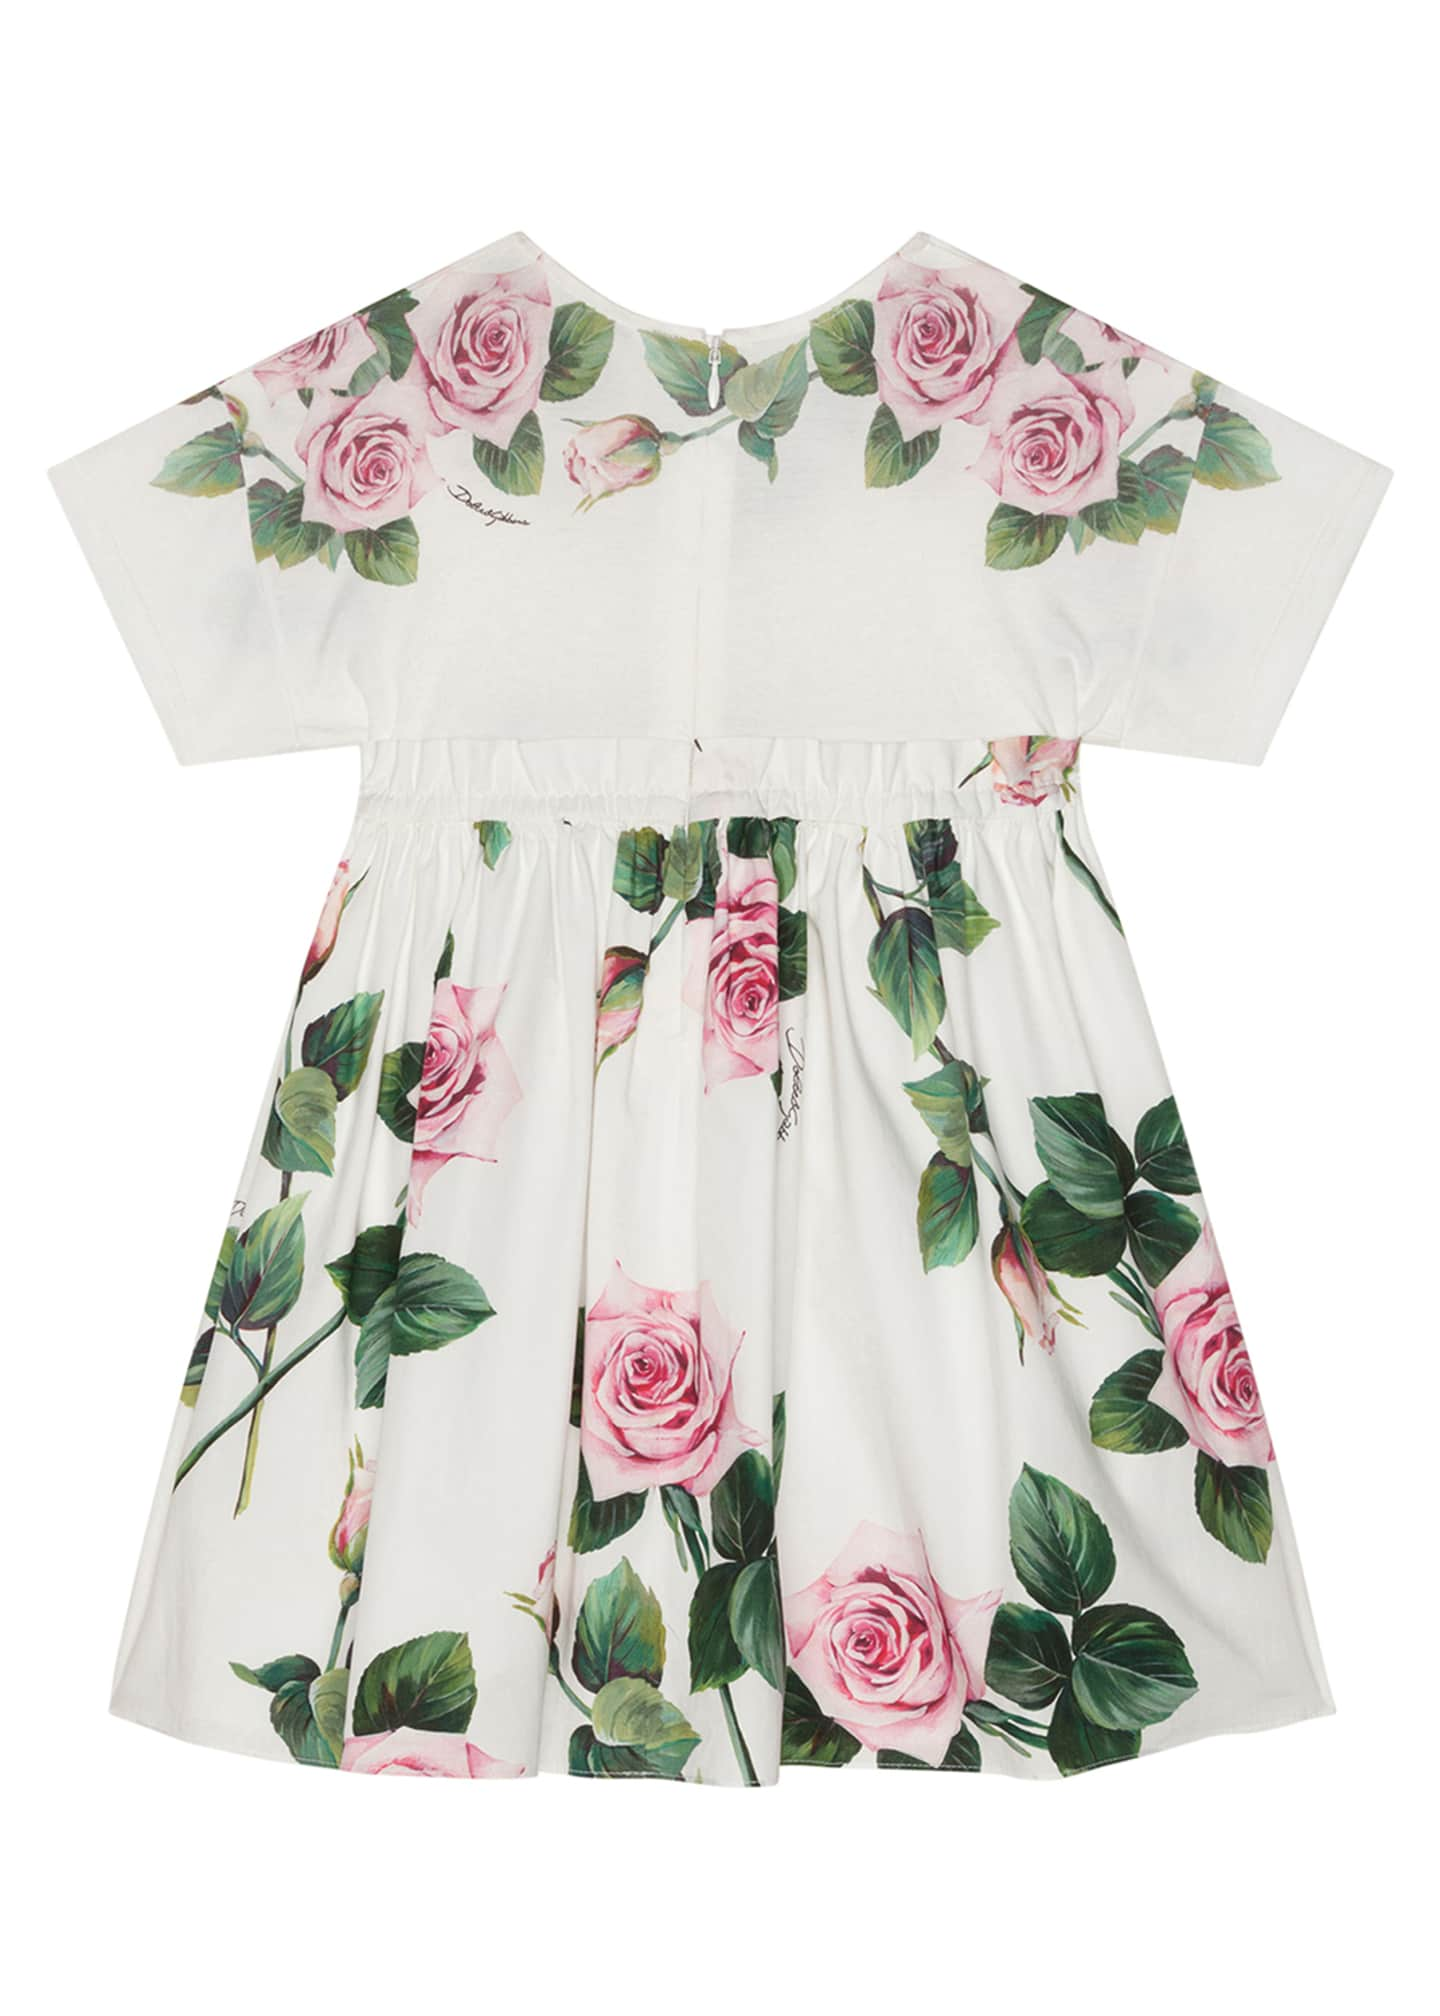 Image 2 of 2: Girl's Rose Print Combo Knit Top Dress, Size 8-12